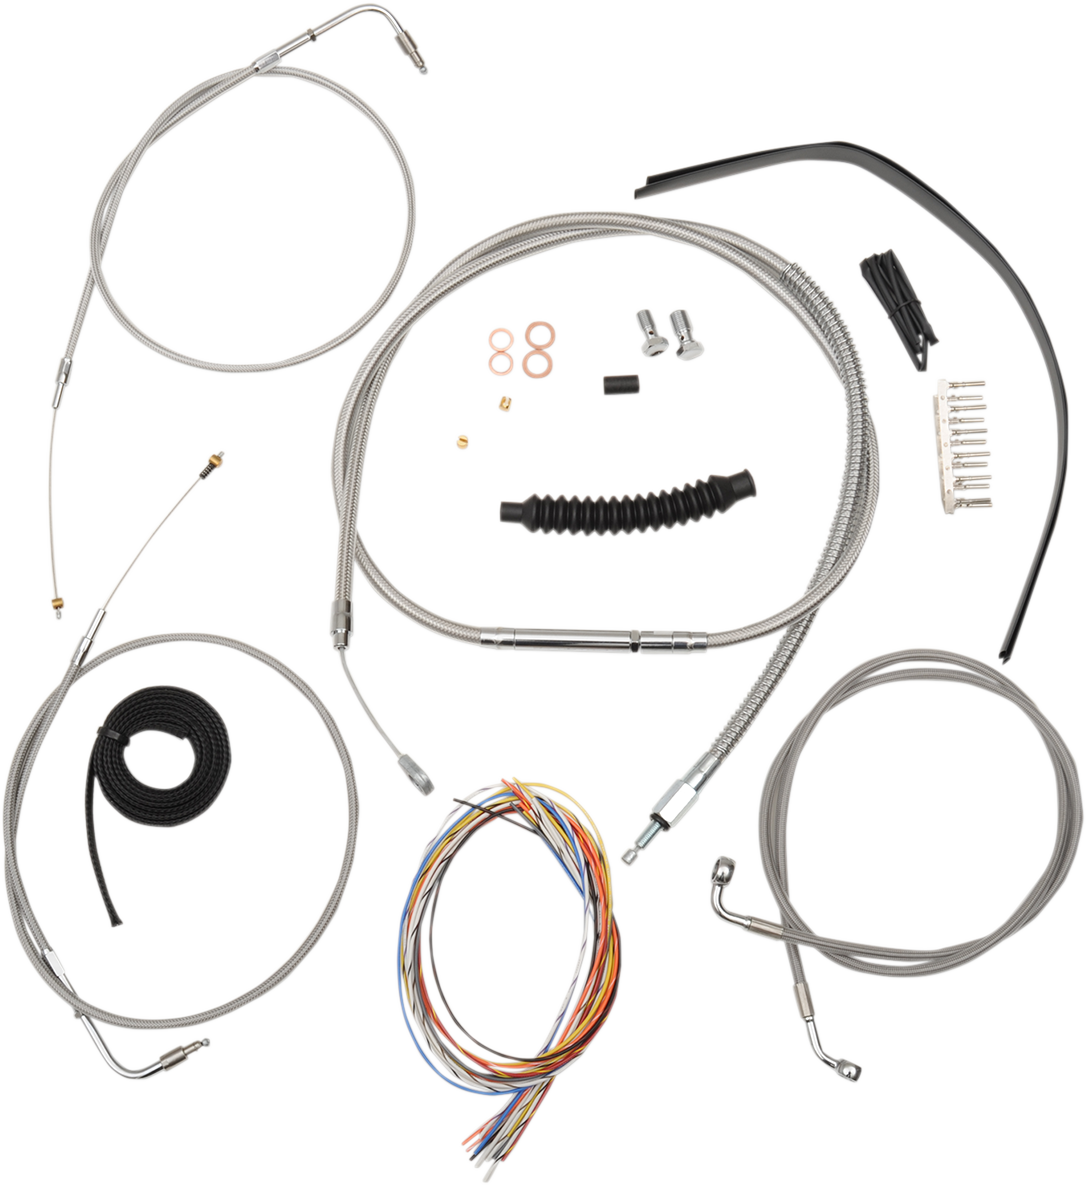 La Chopper Stainless Braided Handlebar Cable Kit 13-19 Harley ABS Sportster XLN